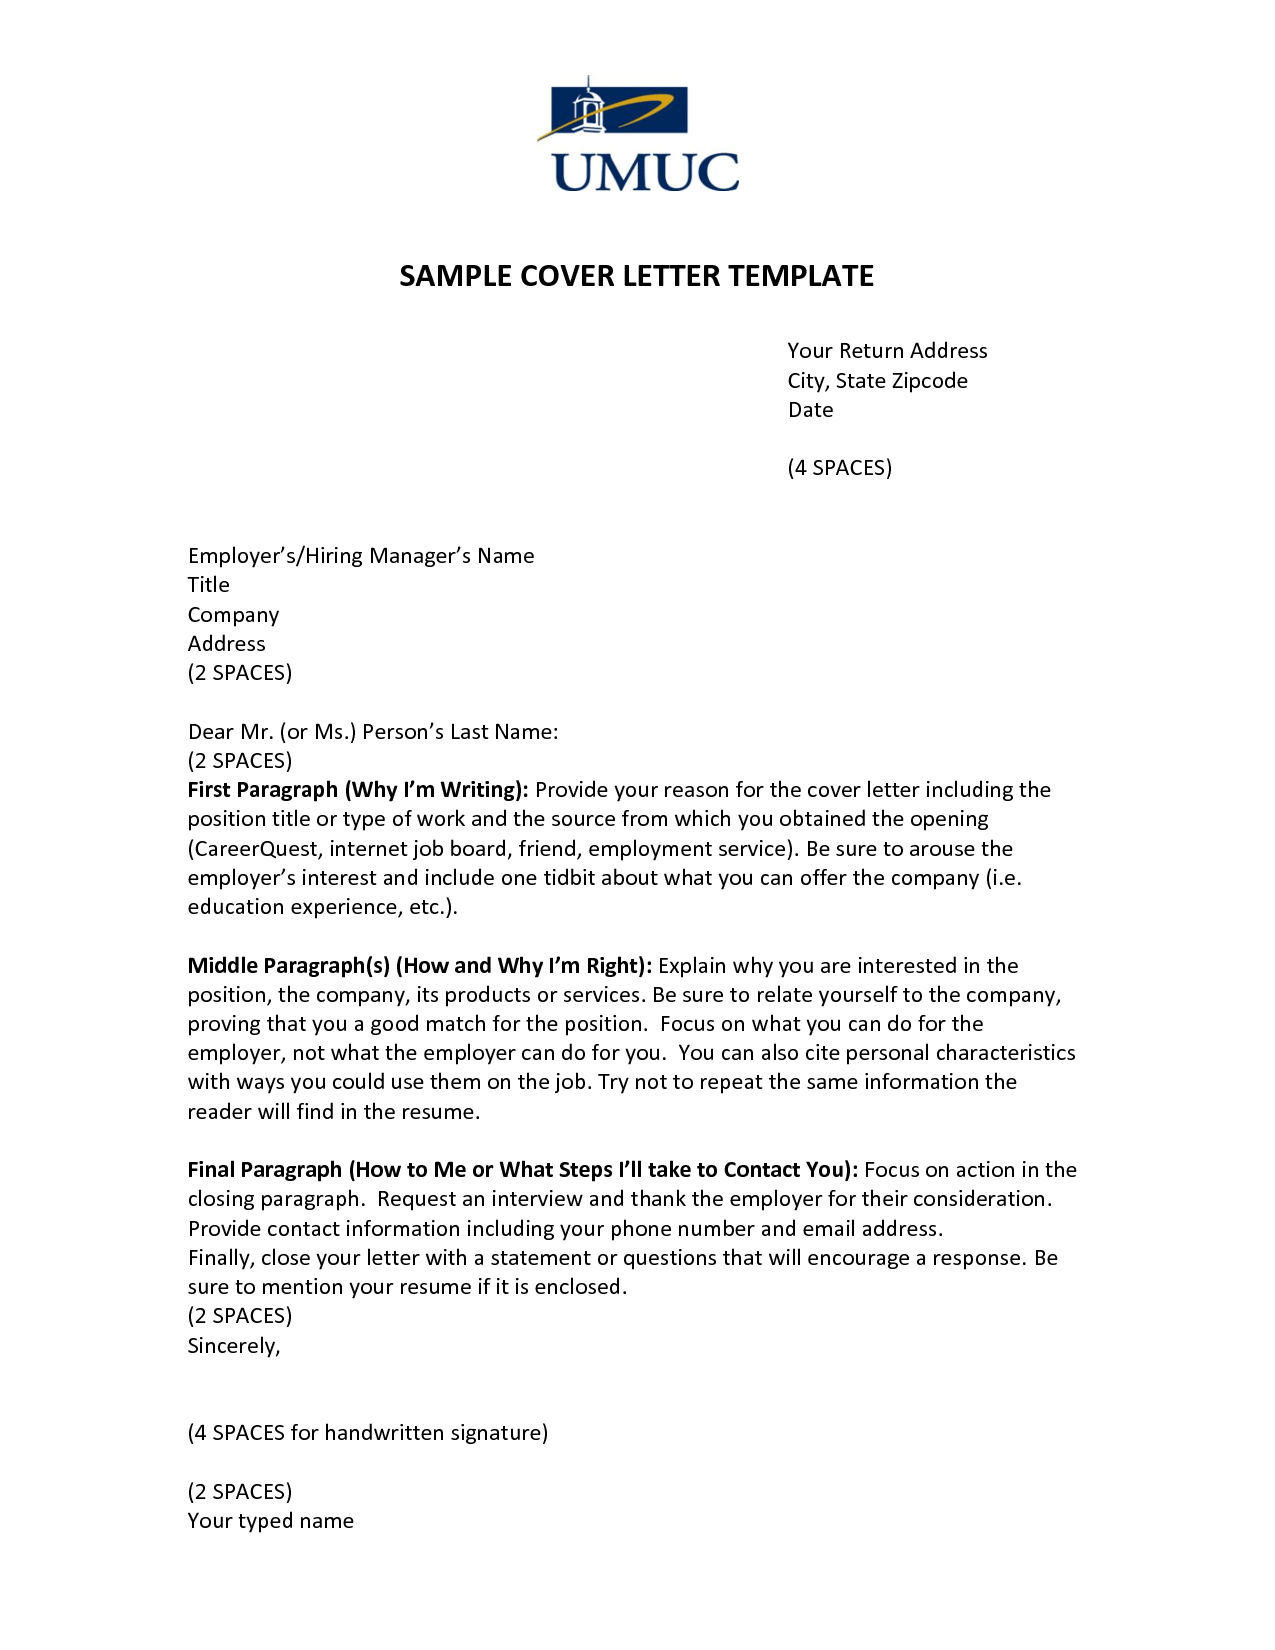 SAMPLE COVER LETTER TEMPLATE UMUCover Letter Template